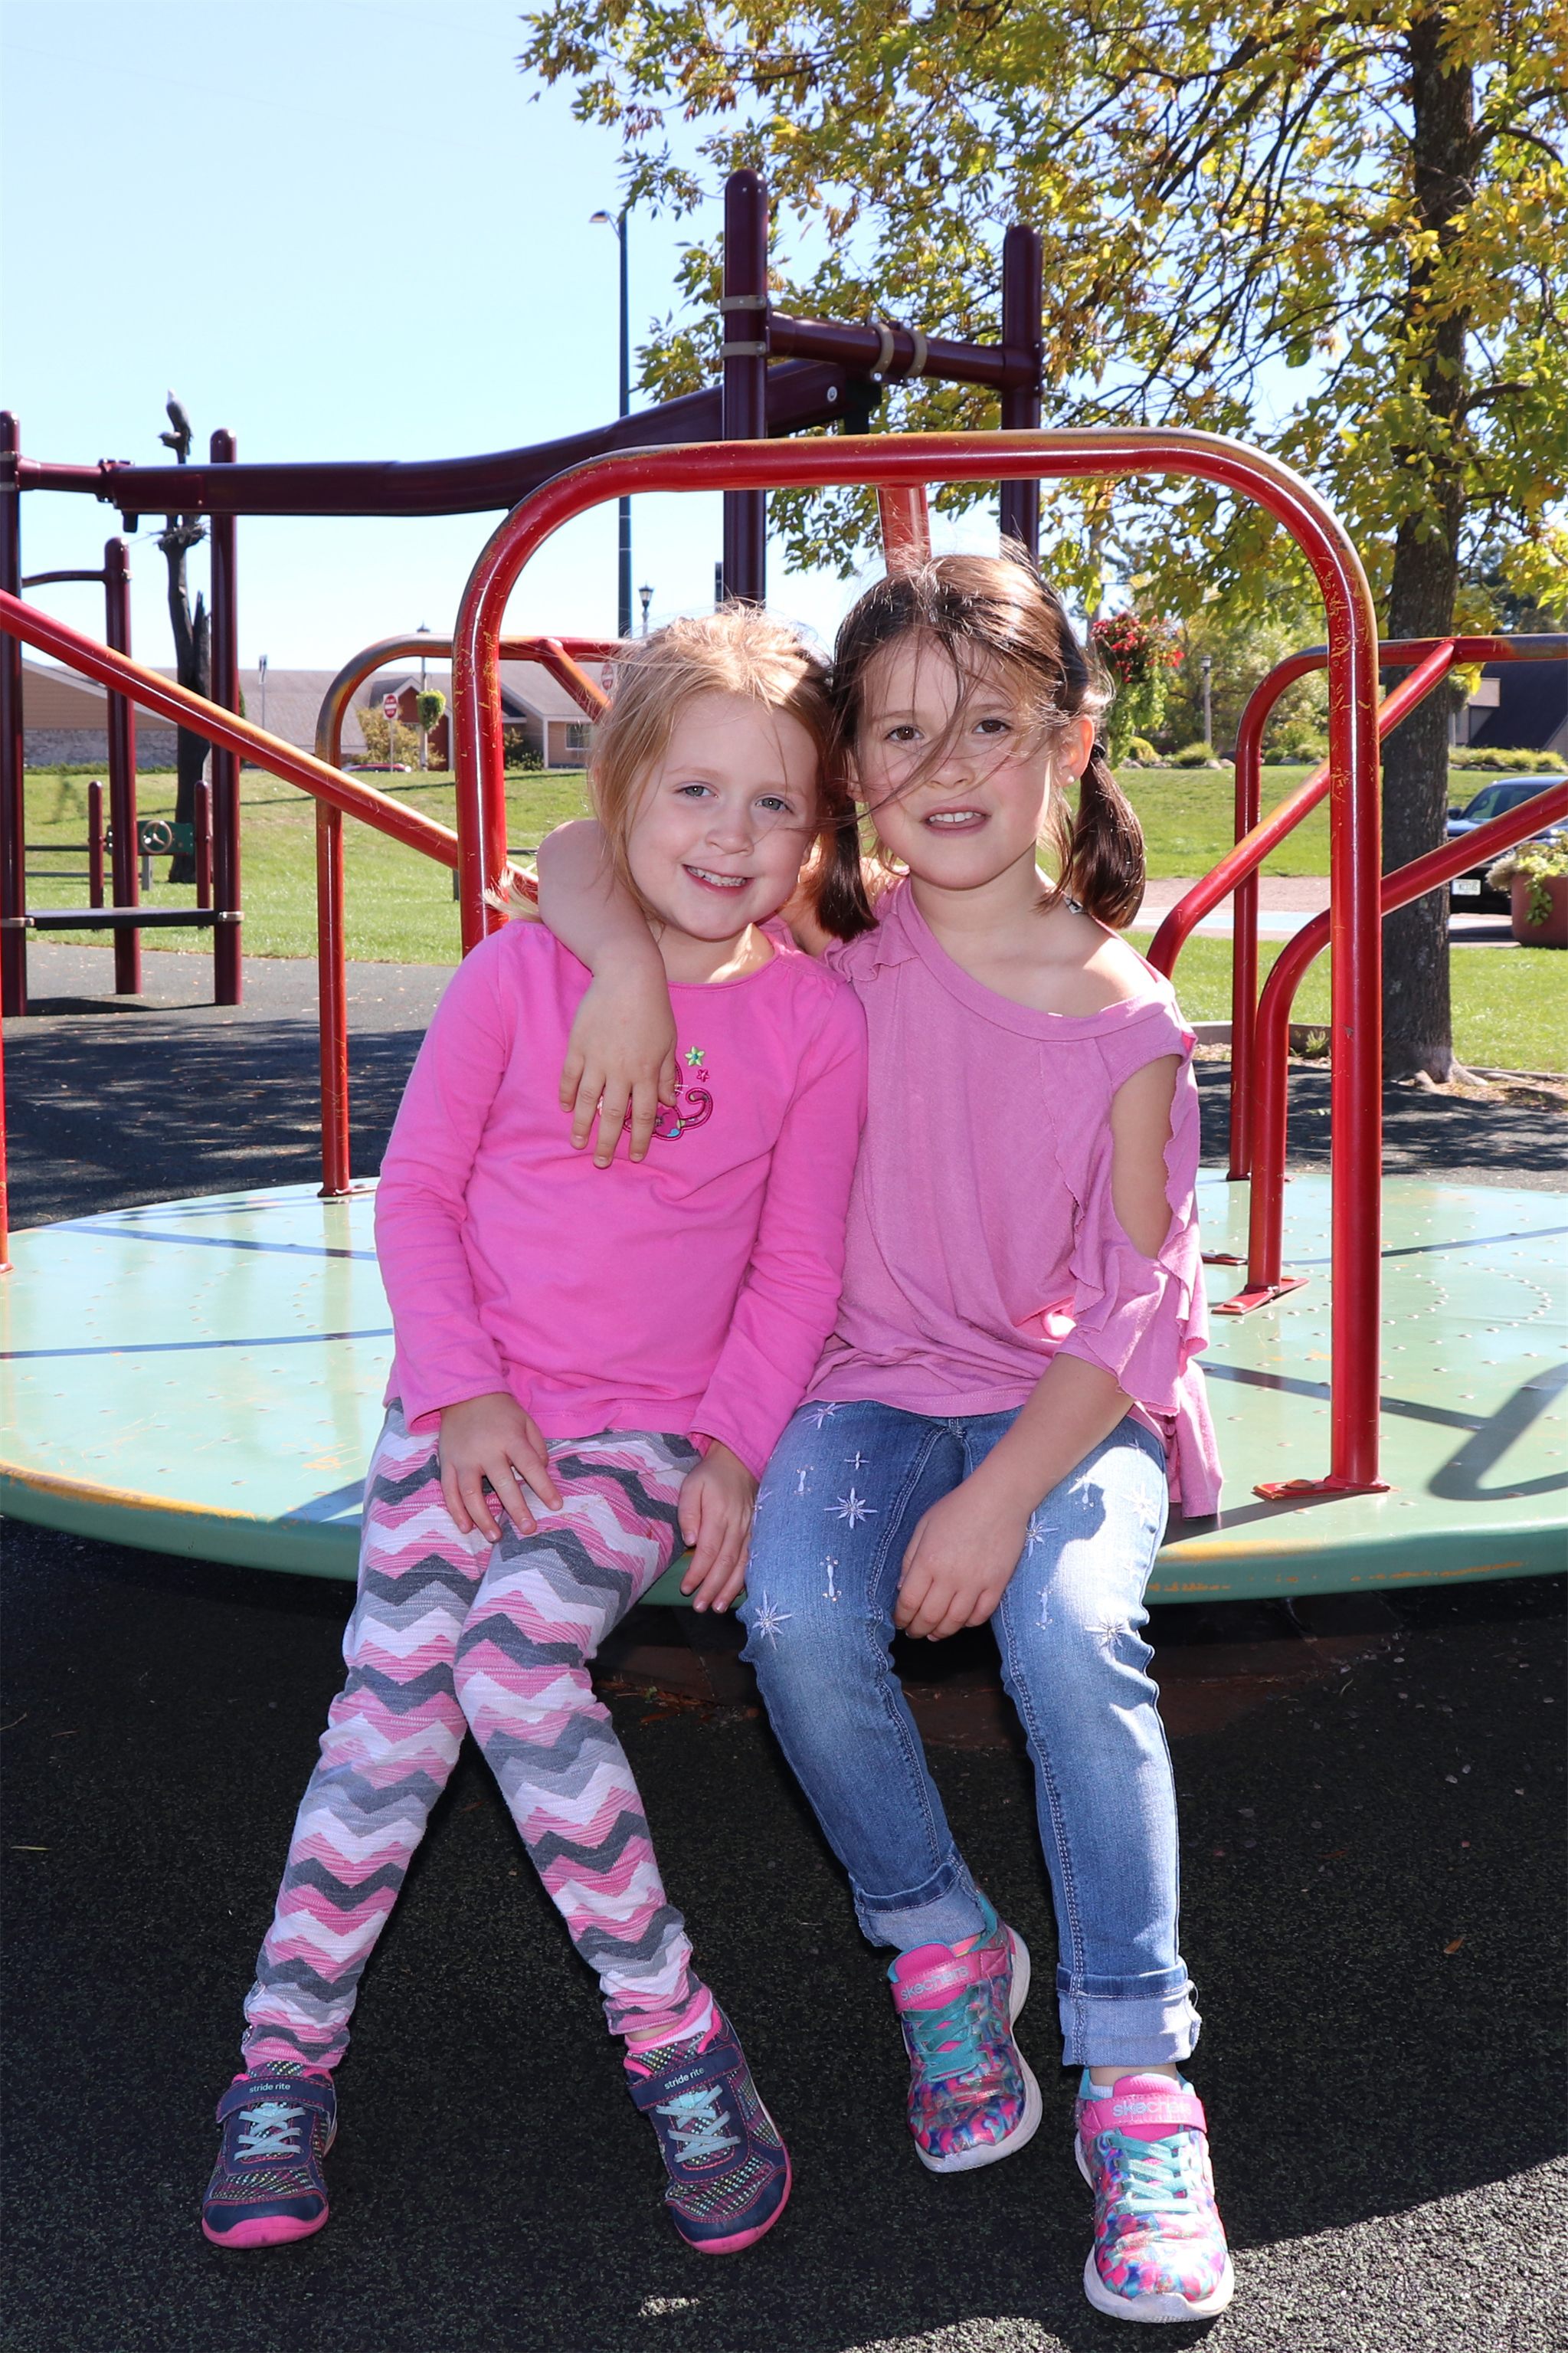 Pretty in pink, these girls enjoy the afternoon at Torpy Park in Minocqua. Kim Johnson photo